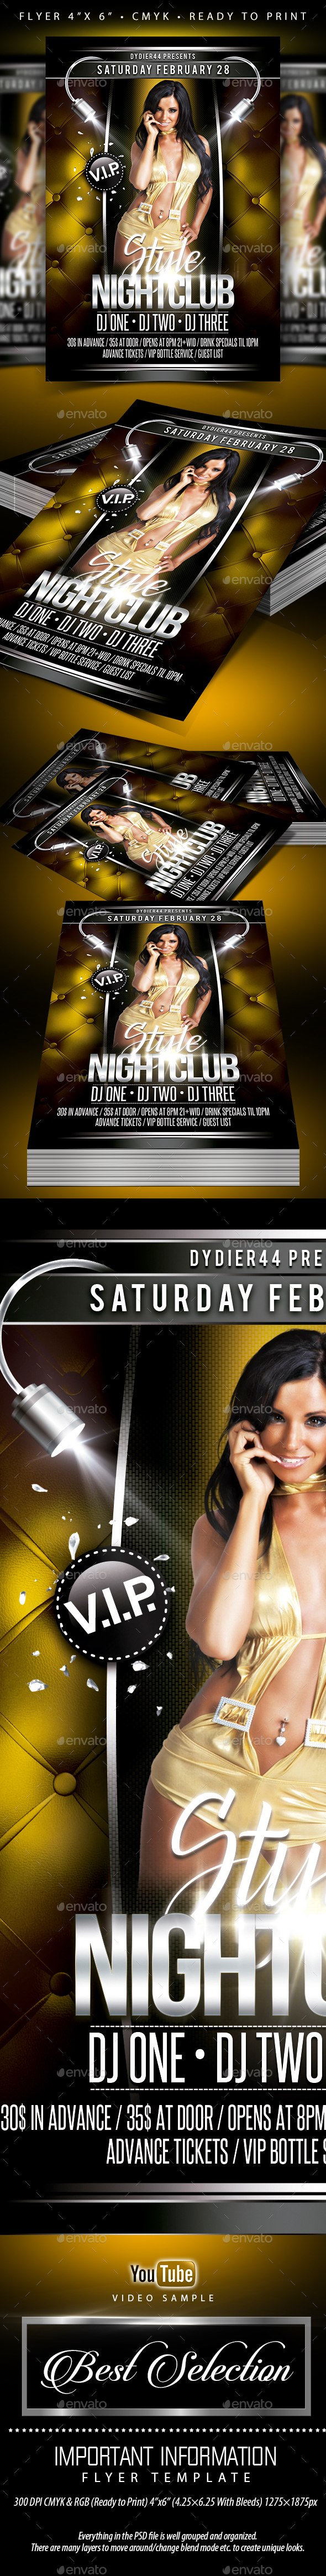 Style Nightclub (Flyer Template 4x6) - Events Flyers